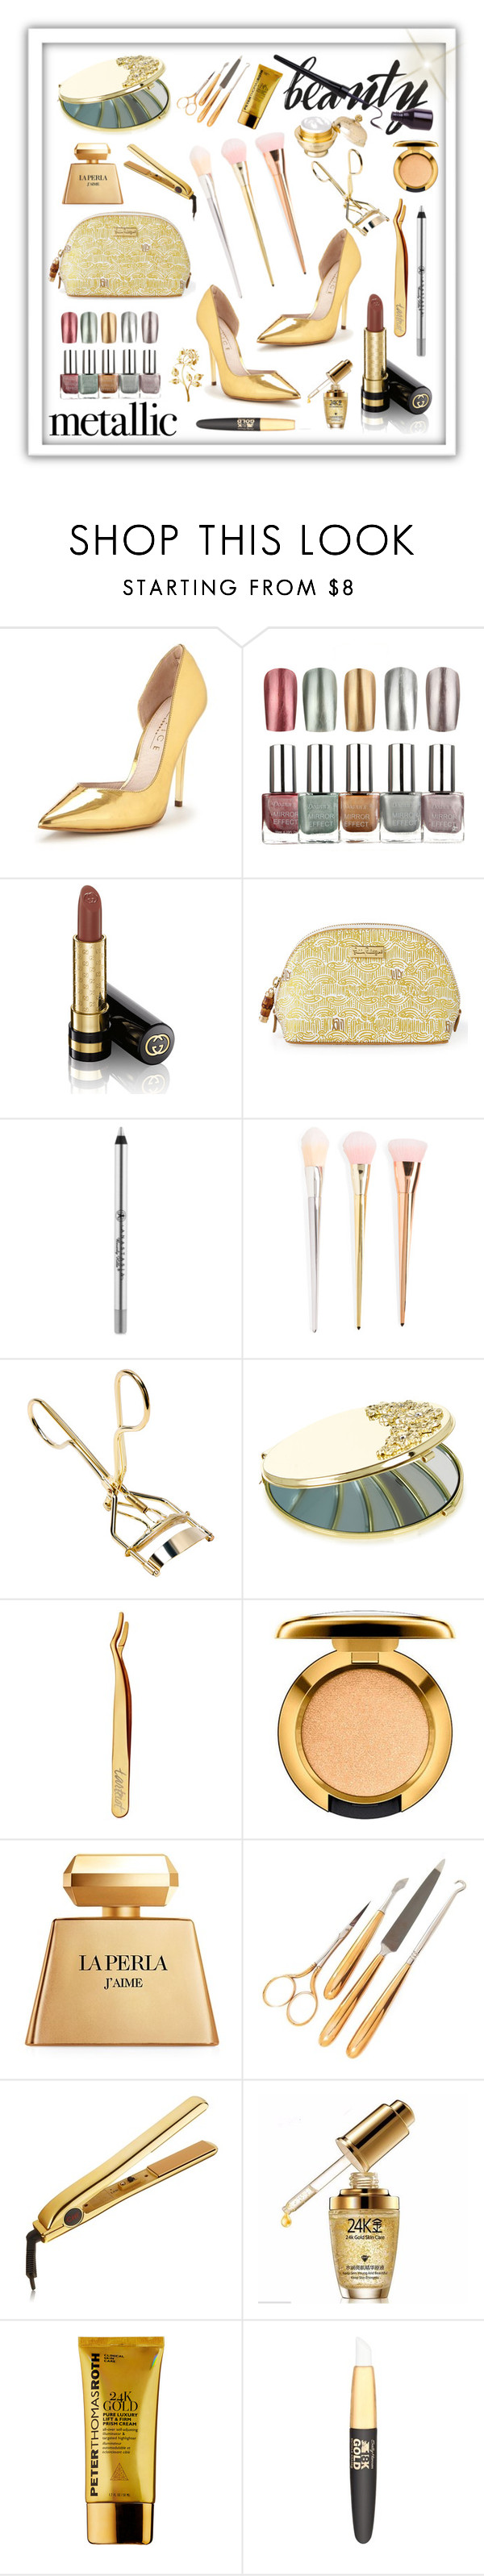 """#metallicmakeup"" by edin-levic ❤ liked on Polyvore featuring beauty, Office, Gucci, Lilly Pulitzer, Anastasia Beverly Hills, Monsoon, tarte, La Perla, Gorham and Peter Thomas Roth"